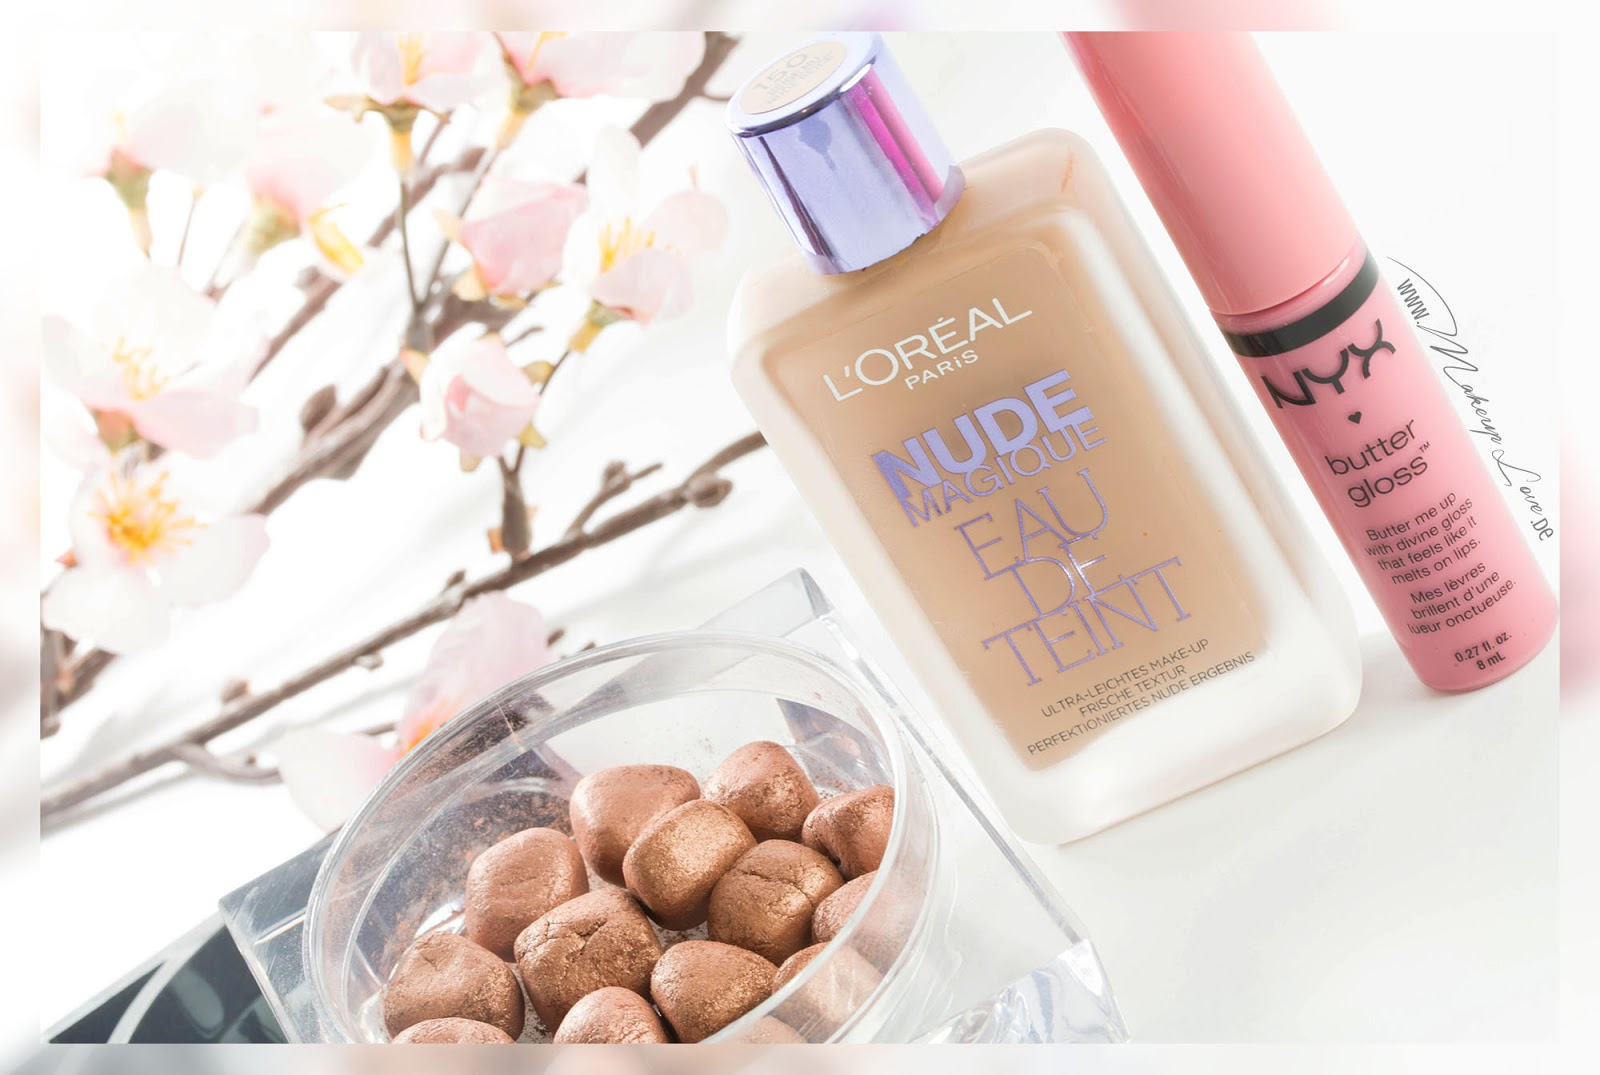 L'Oreal Nude Magique Eau de Teint NYX Butter Gloss p2 catch the glow body pearls